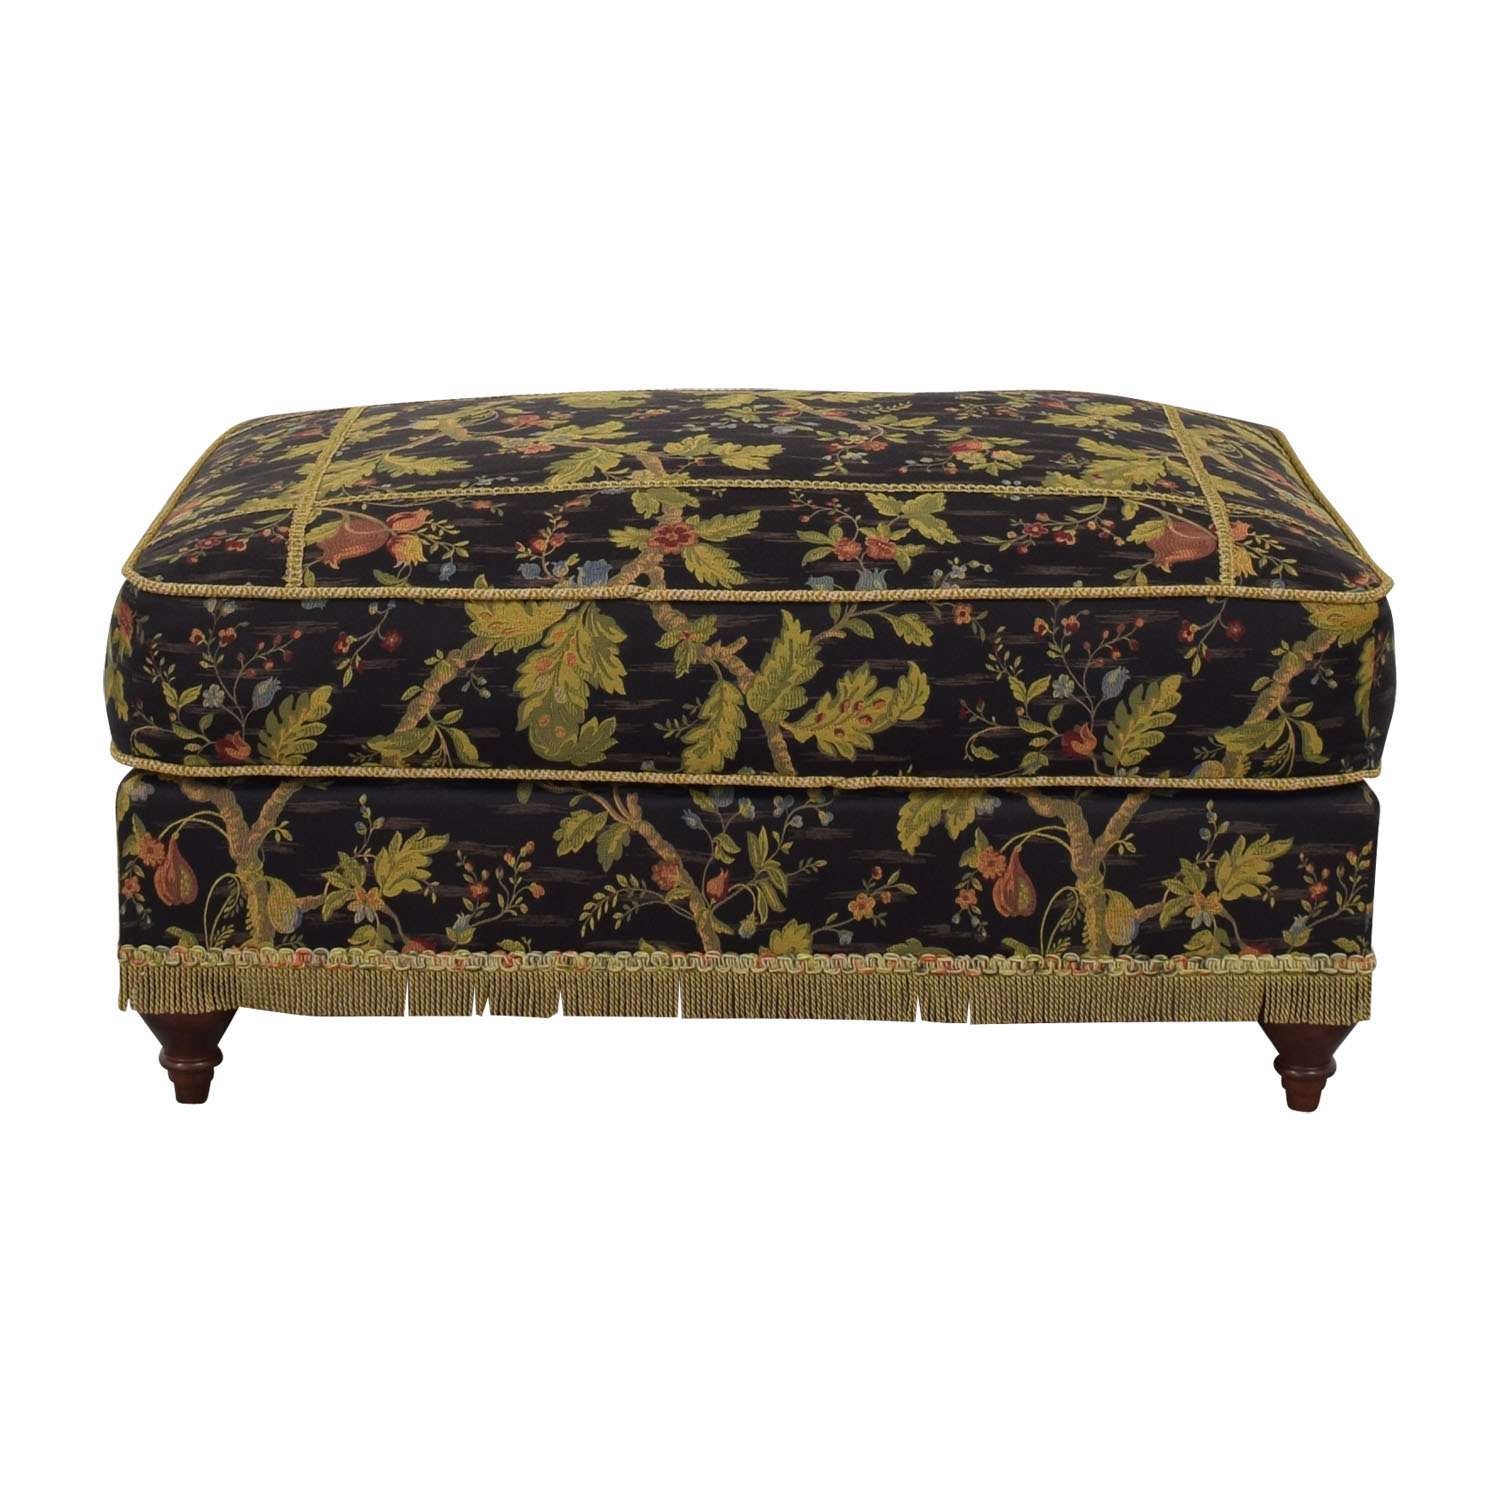 Domain Home Domain Home Emily II Victorian-Style Ottoman second hand